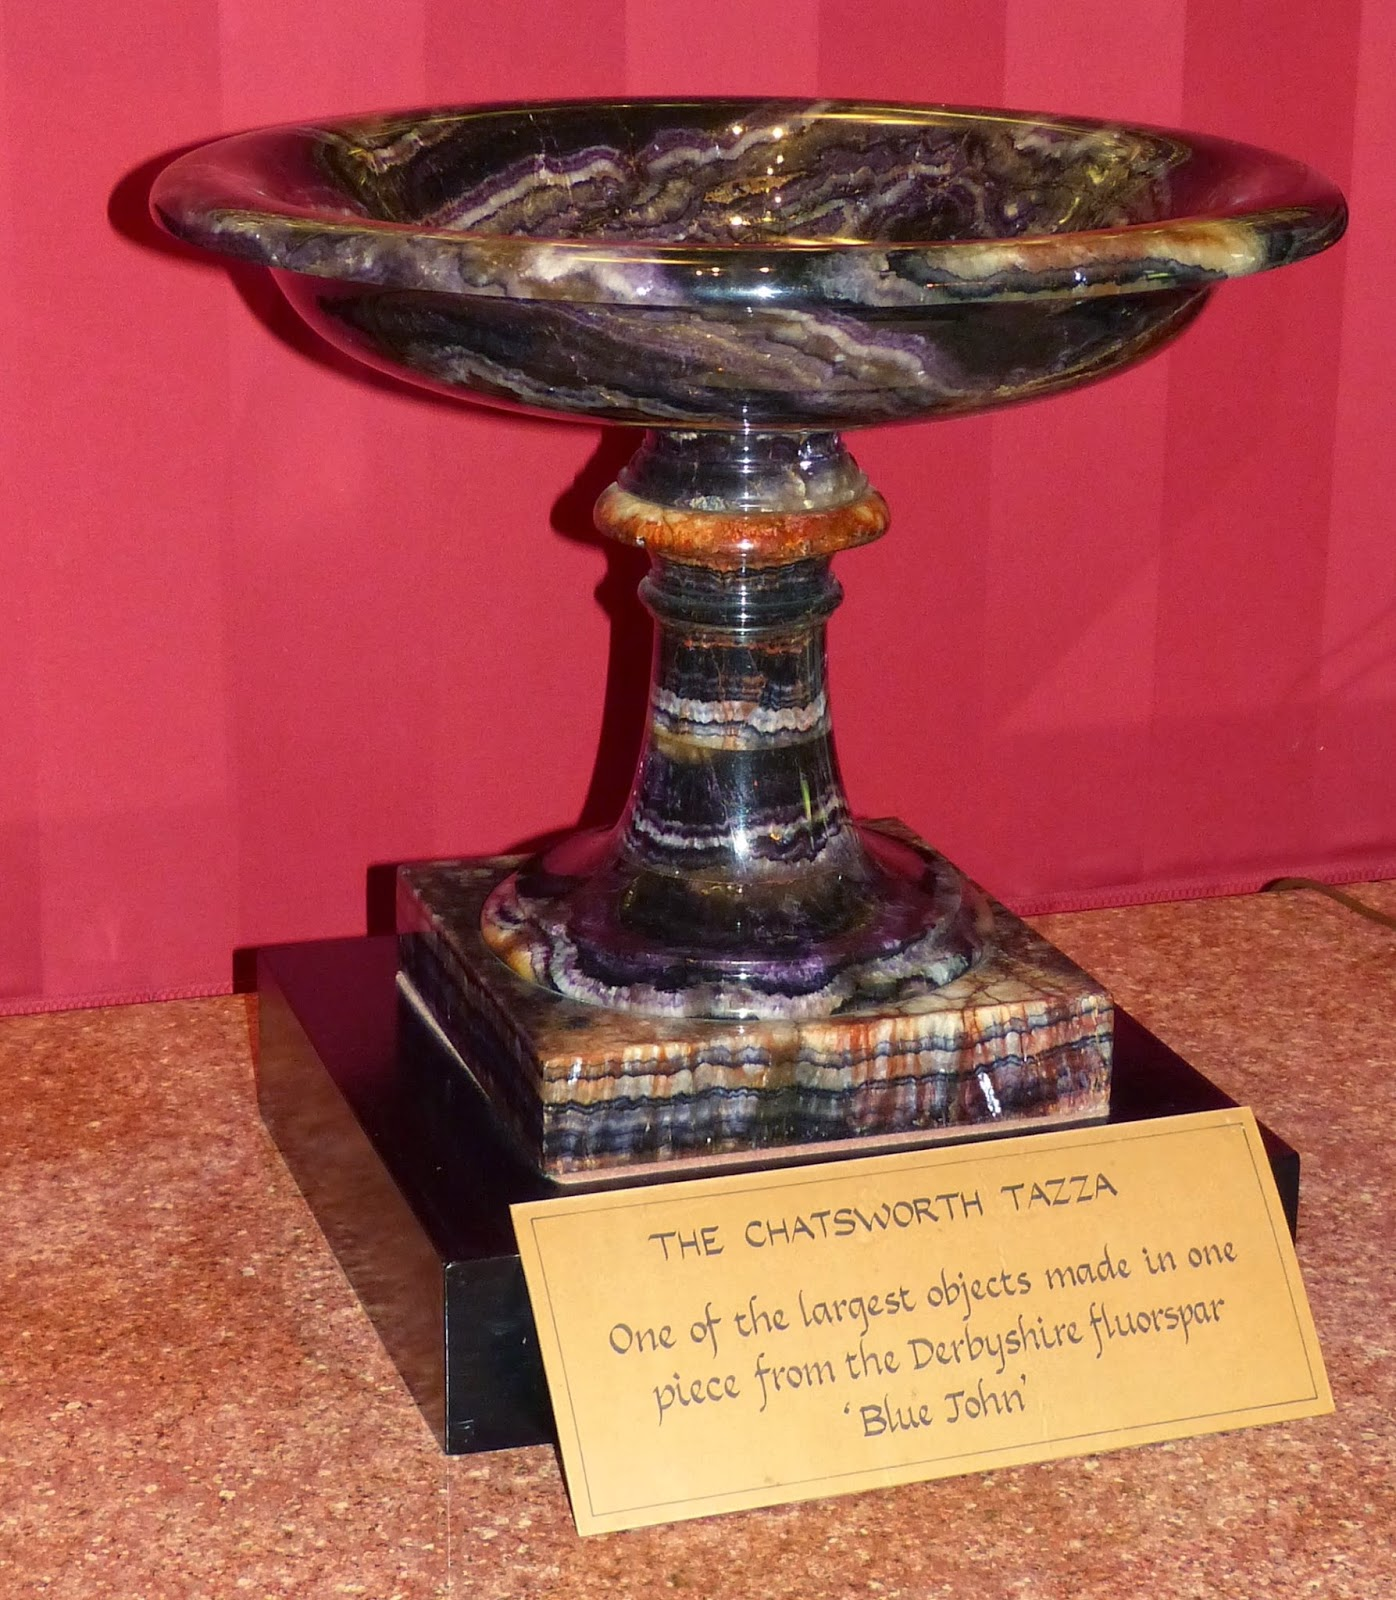 The Chatsworth Tazza, Chatsworth